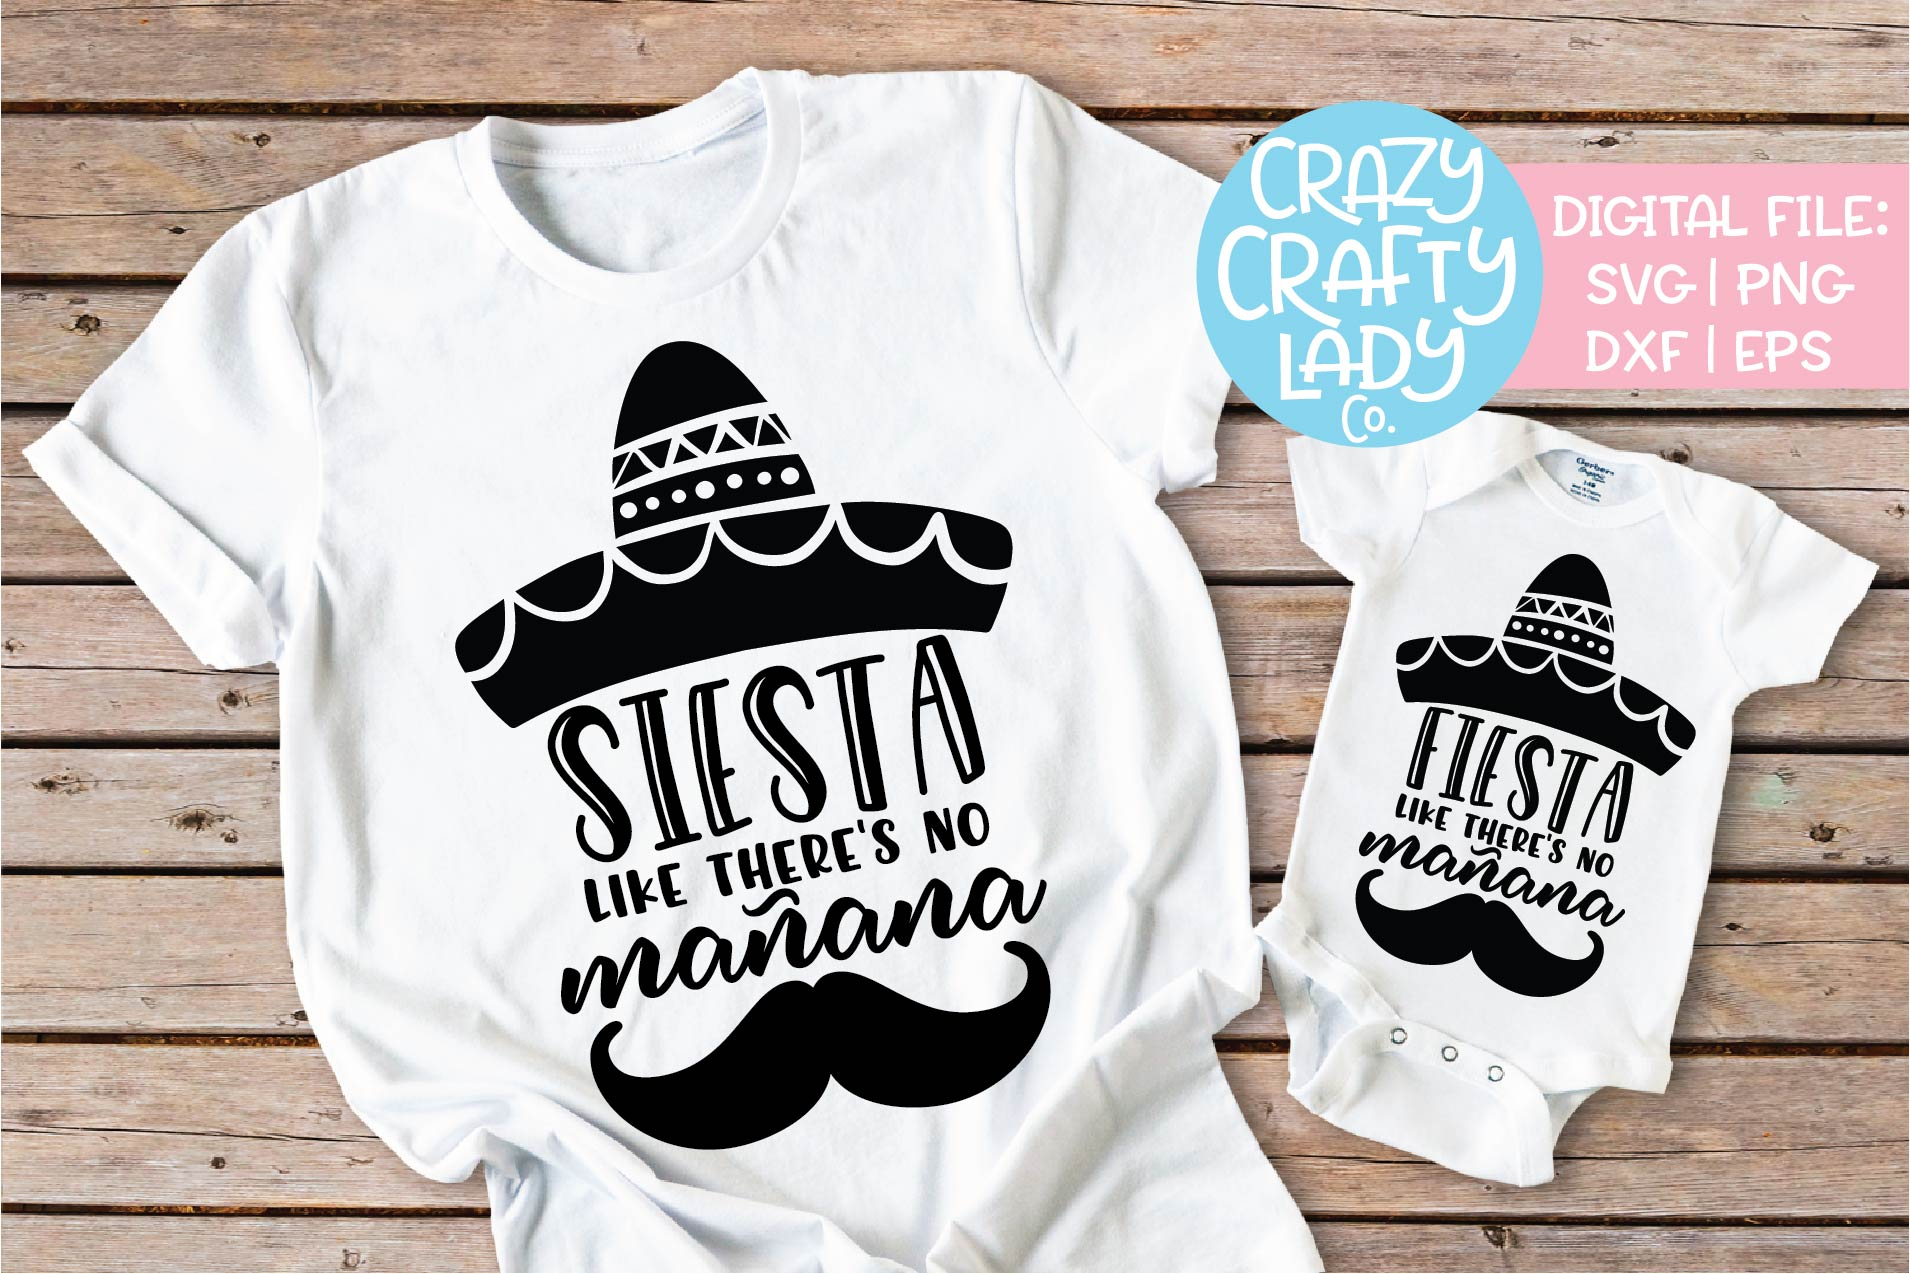 Fiesta & Siesta Like There's SVG DXF EPS PNG Cut File Bundle example image 1